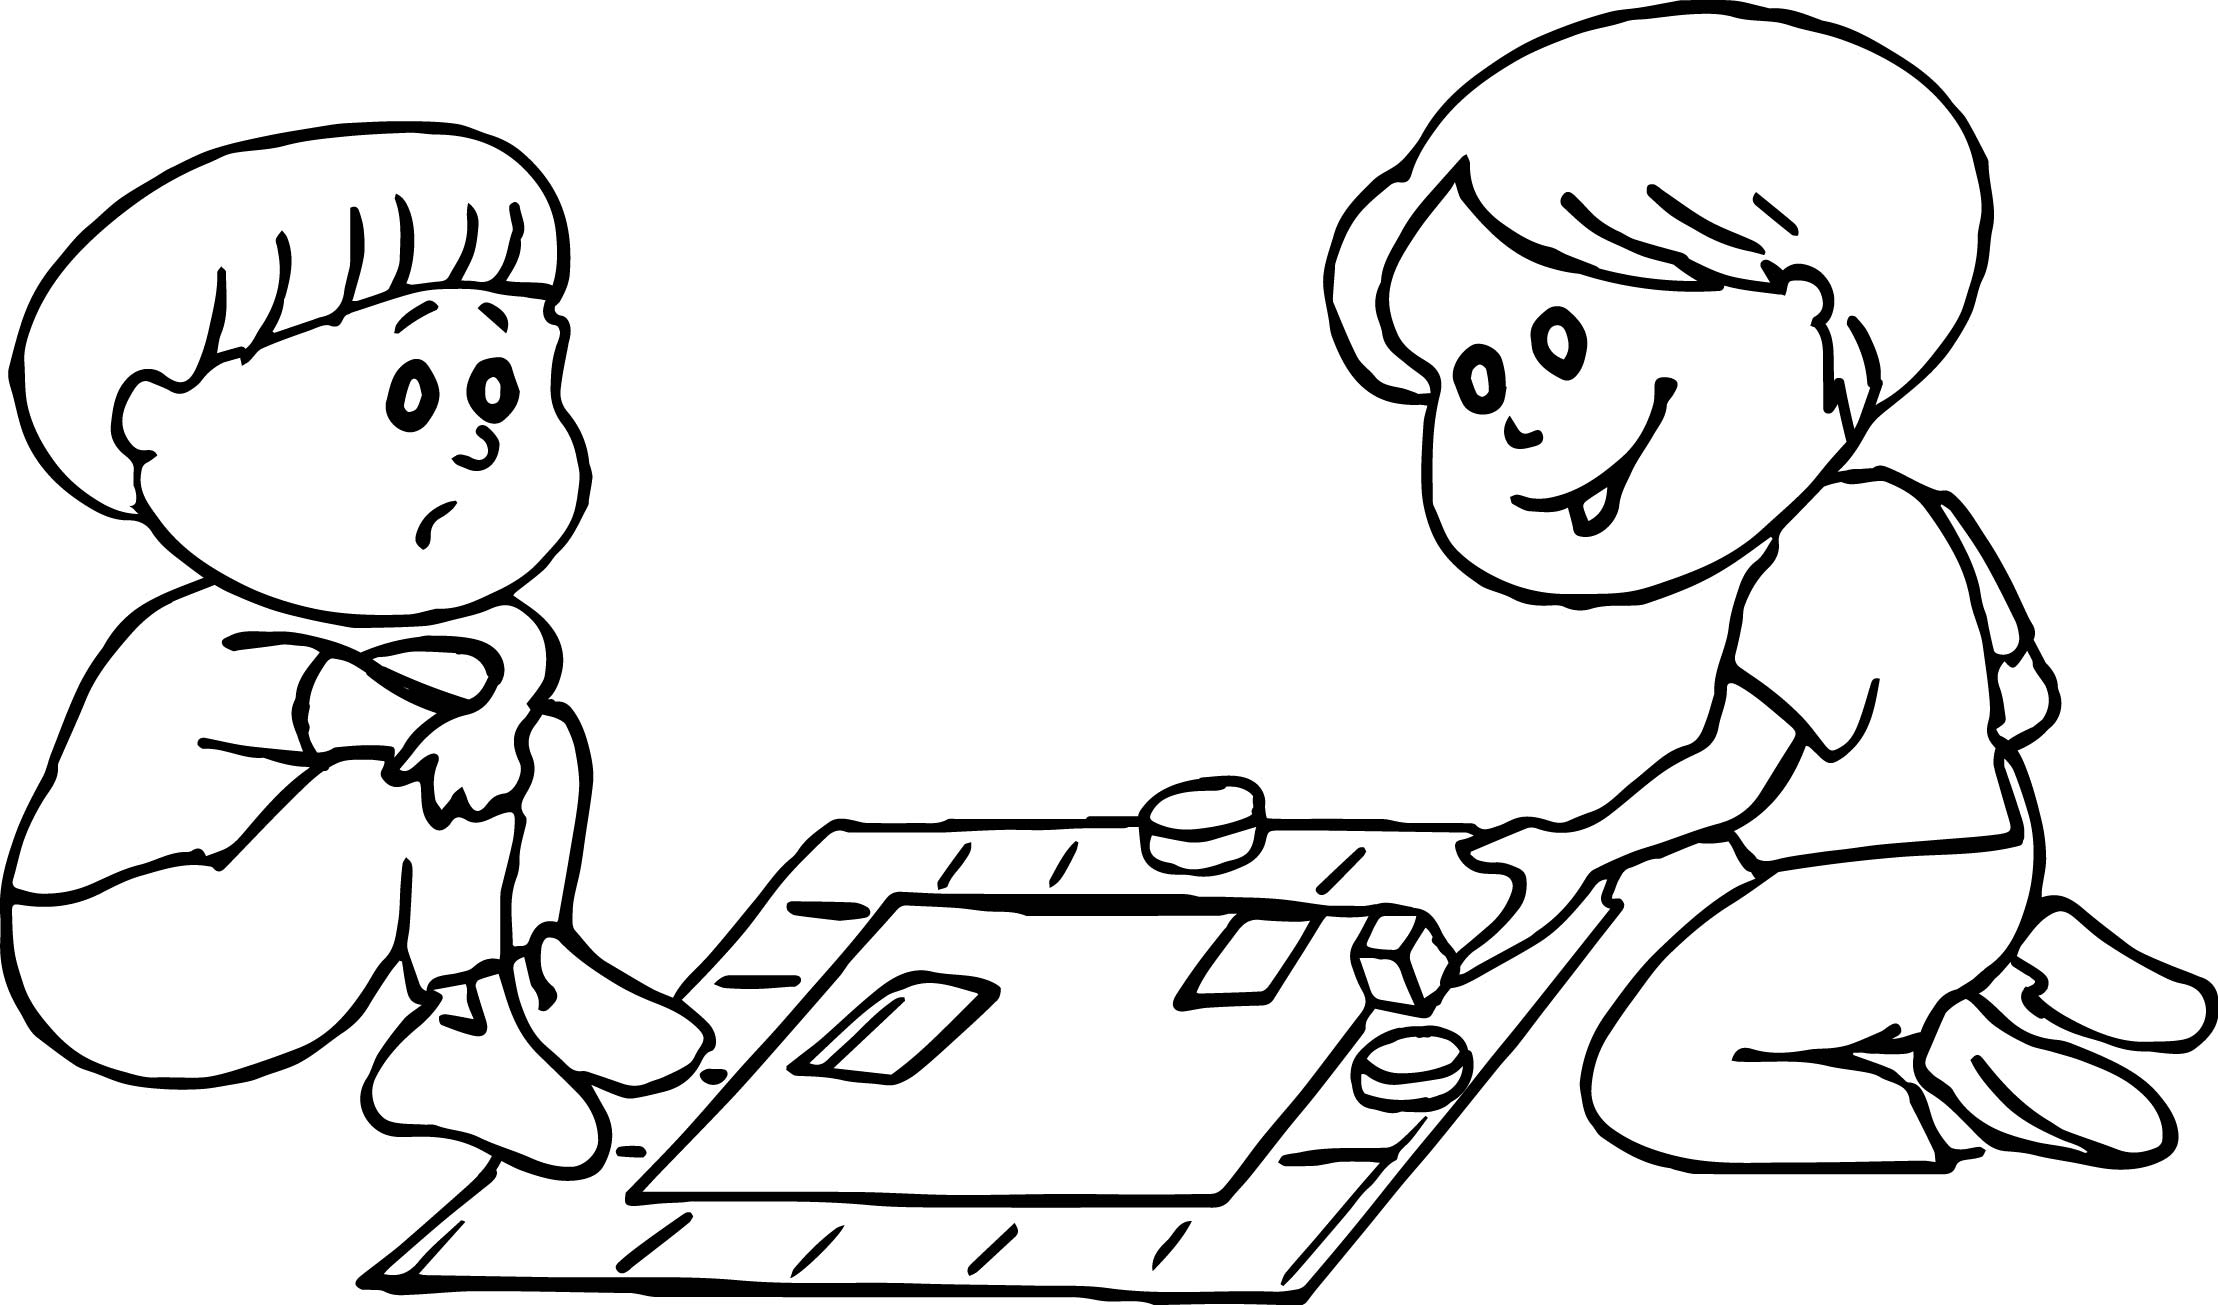 Board Kids Coloring Page | Wecoloringpage.com